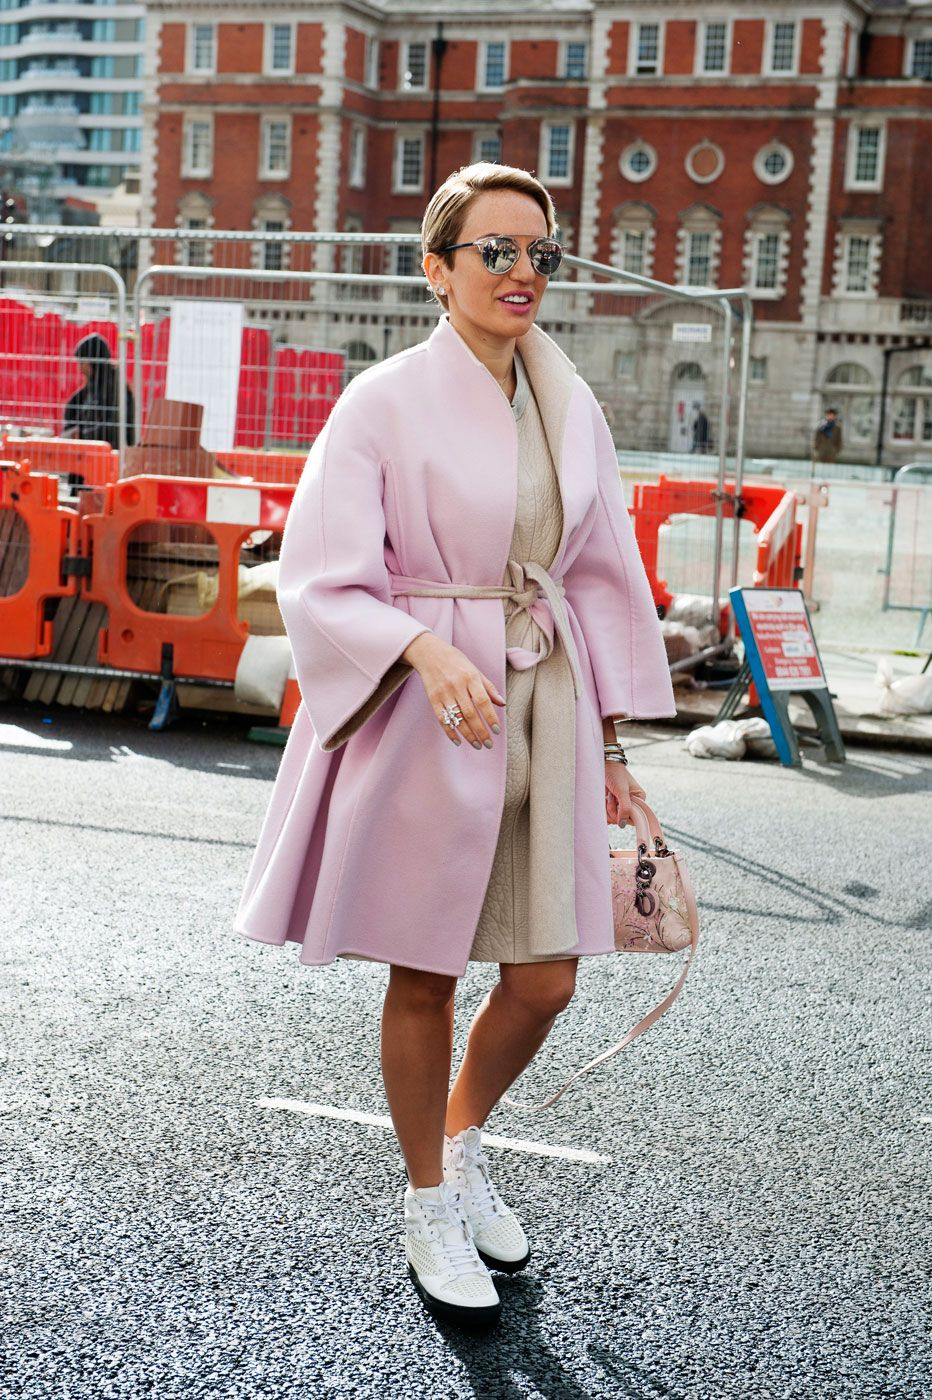 puurty. pink & camel. London.